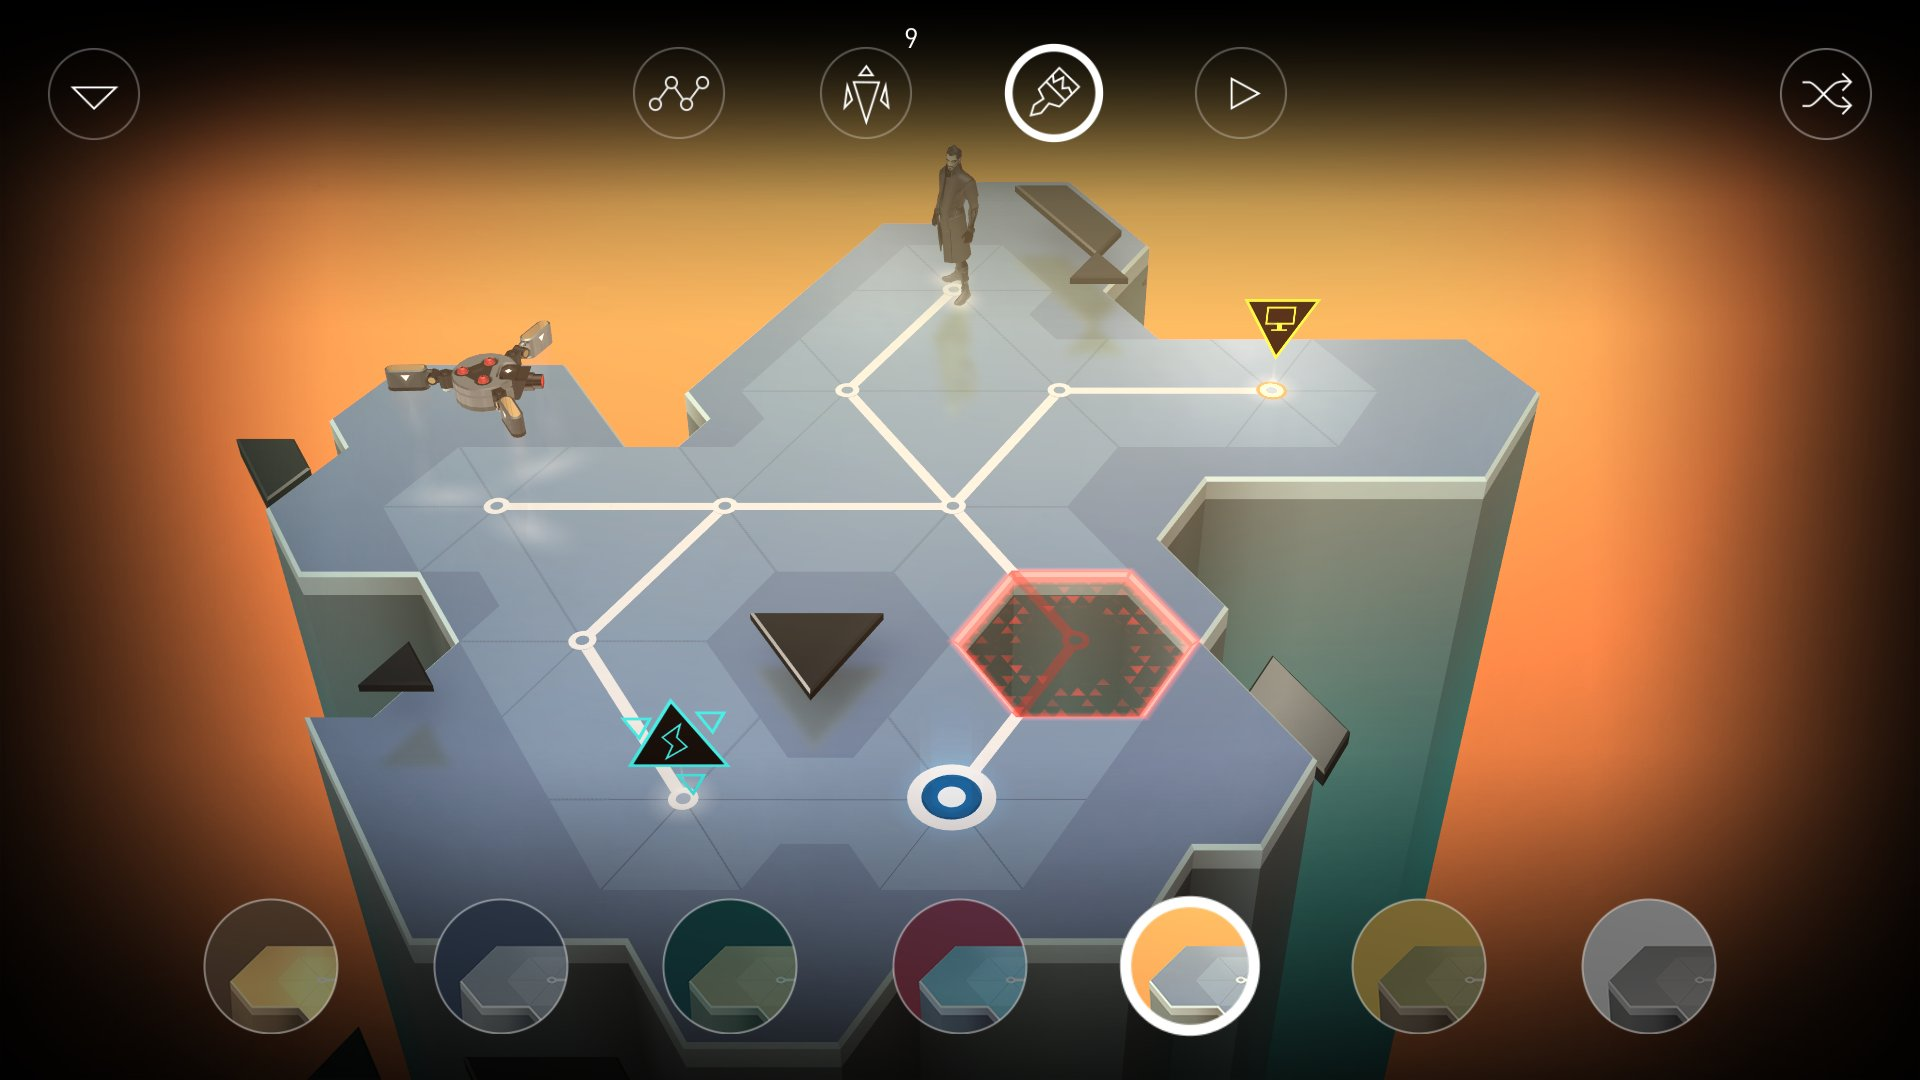 Deus Ex Go' Needs Beta Testers for Puzzle Maker Update – TouchArcade